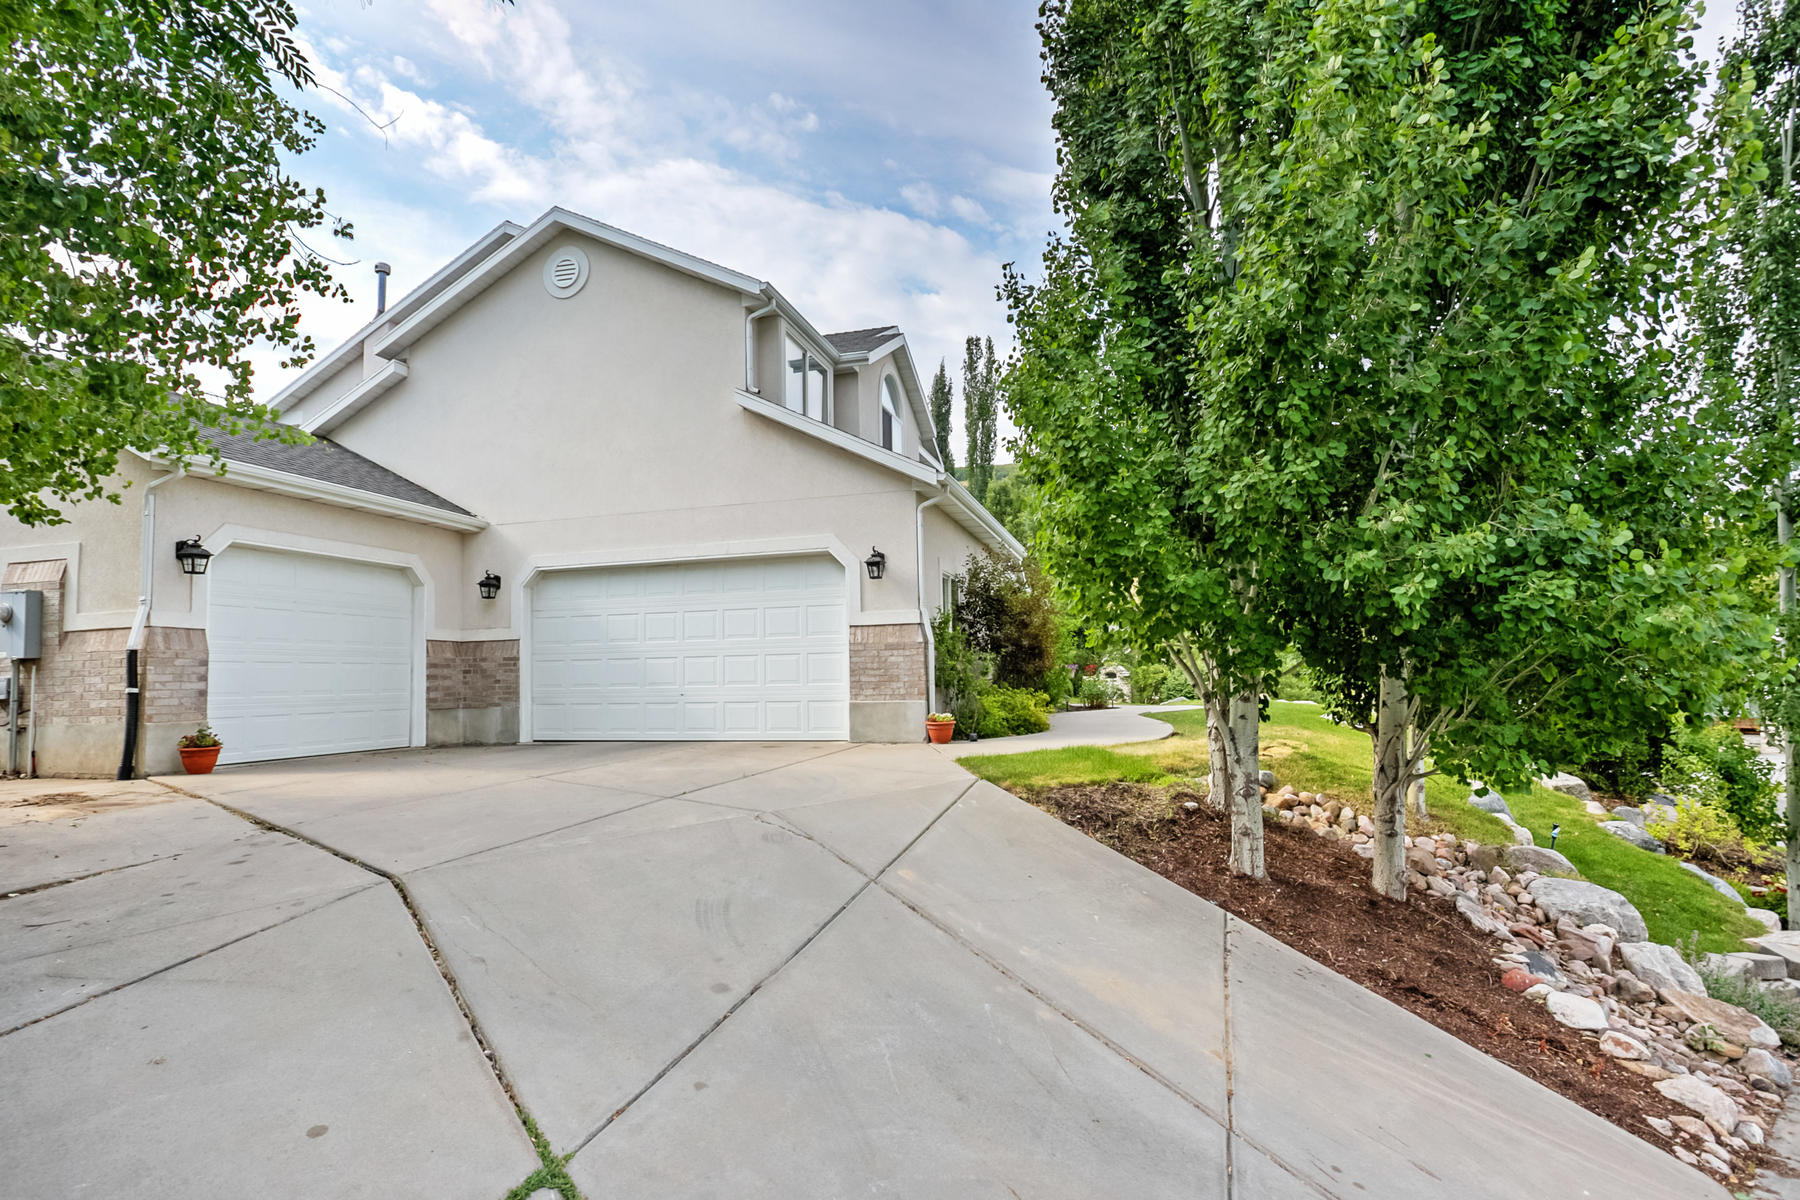 Additional photo for property listing at Cute Two Story In North Salt Lake's Eaglewood Cove 1154 Woodcrest Ln North Salt Lake, Utah 84054 États-Unis